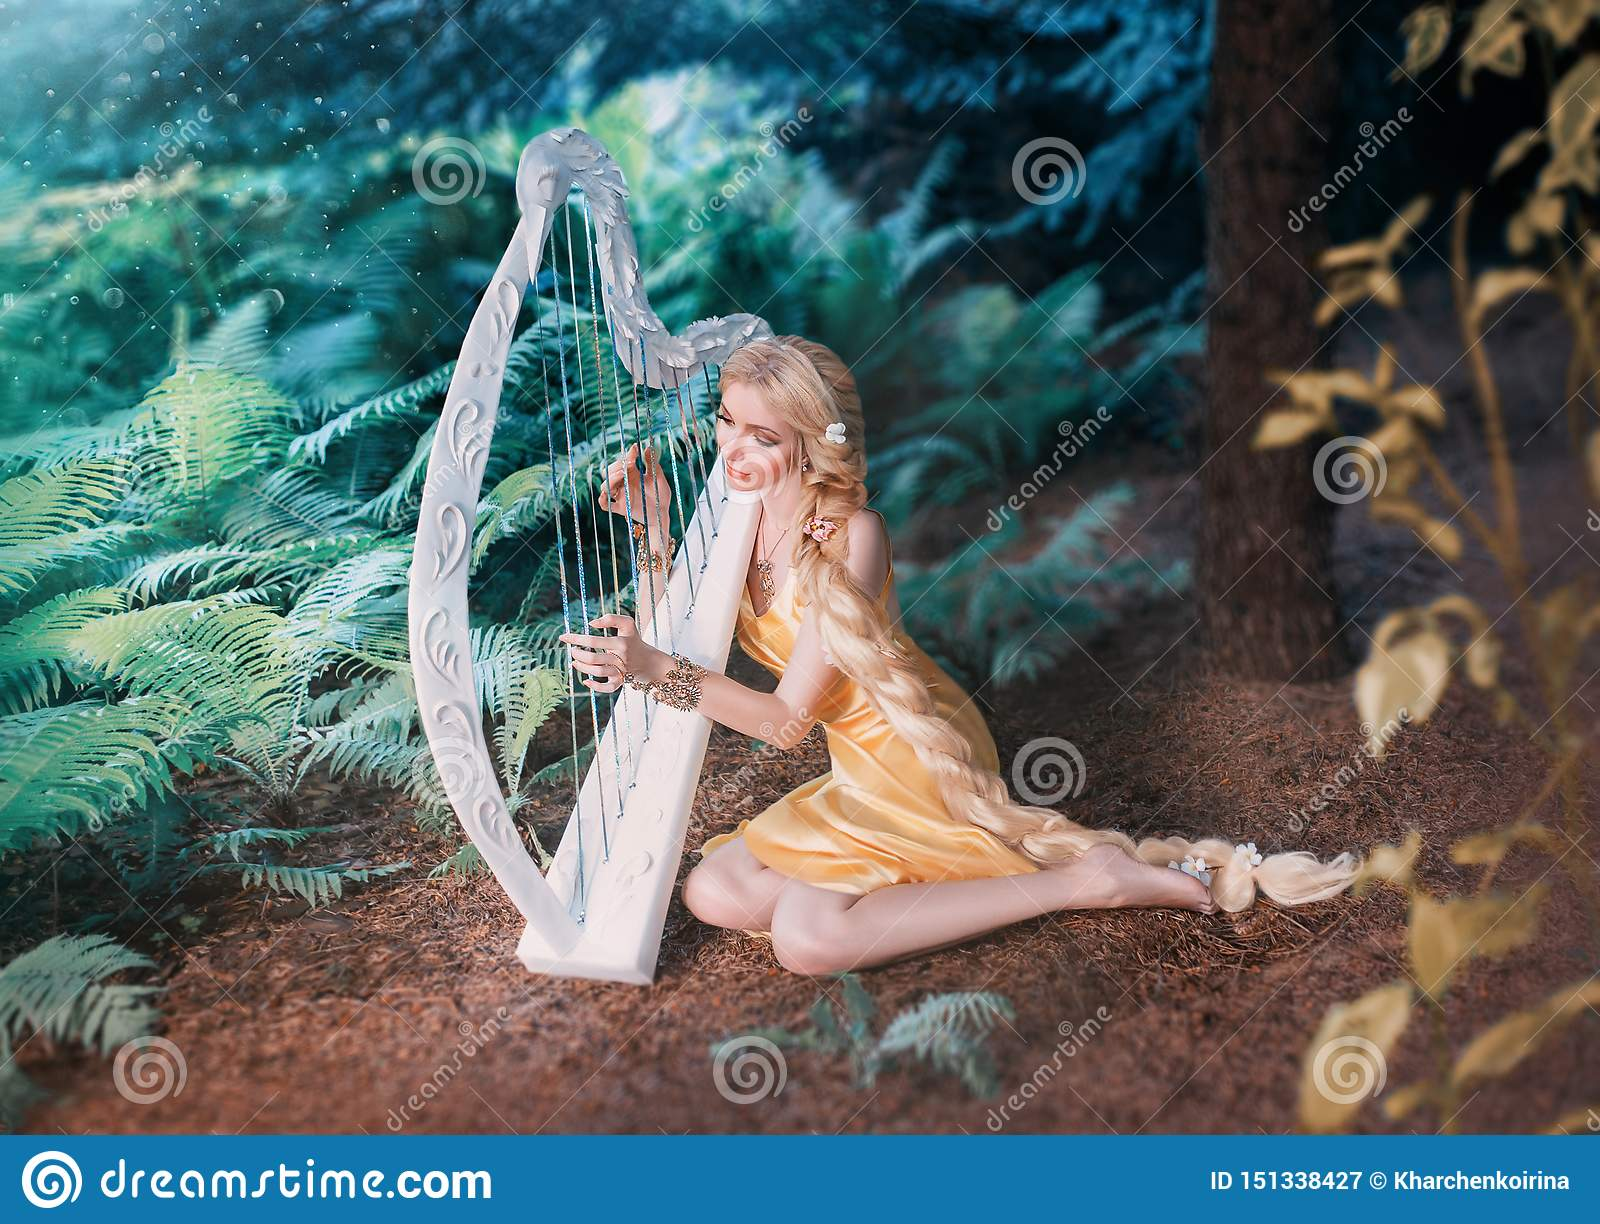 Fabulous forest elf sits under tree and plays on white harp, girl with long blond hair braided in long yellow dress